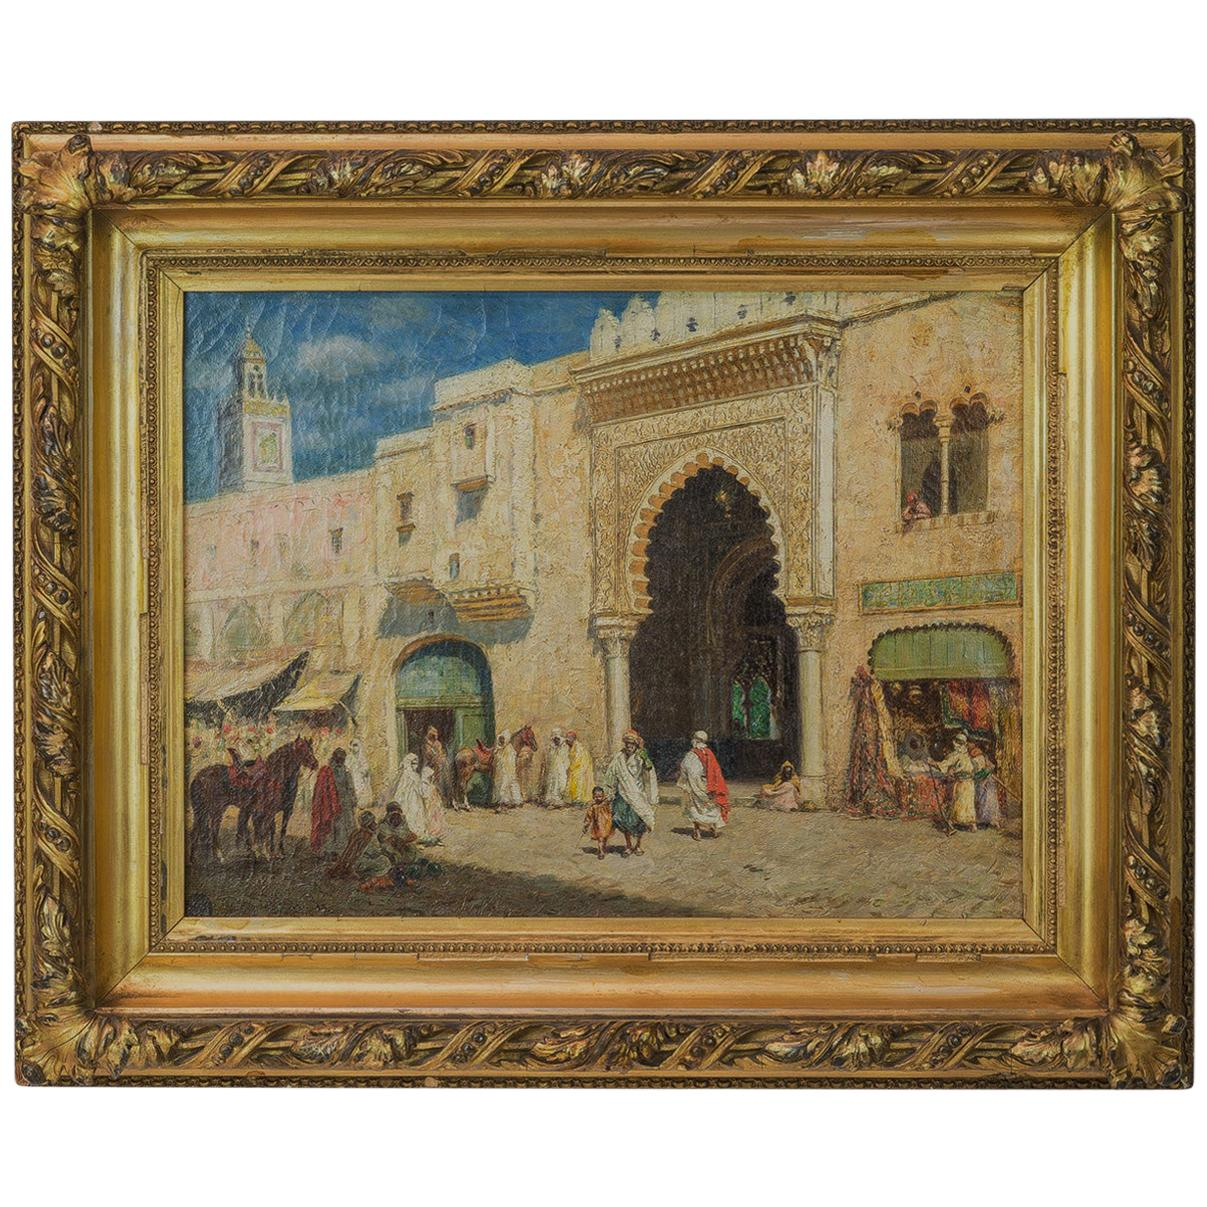 19th Century French Orientalist Painting of a Market by Addison Millar